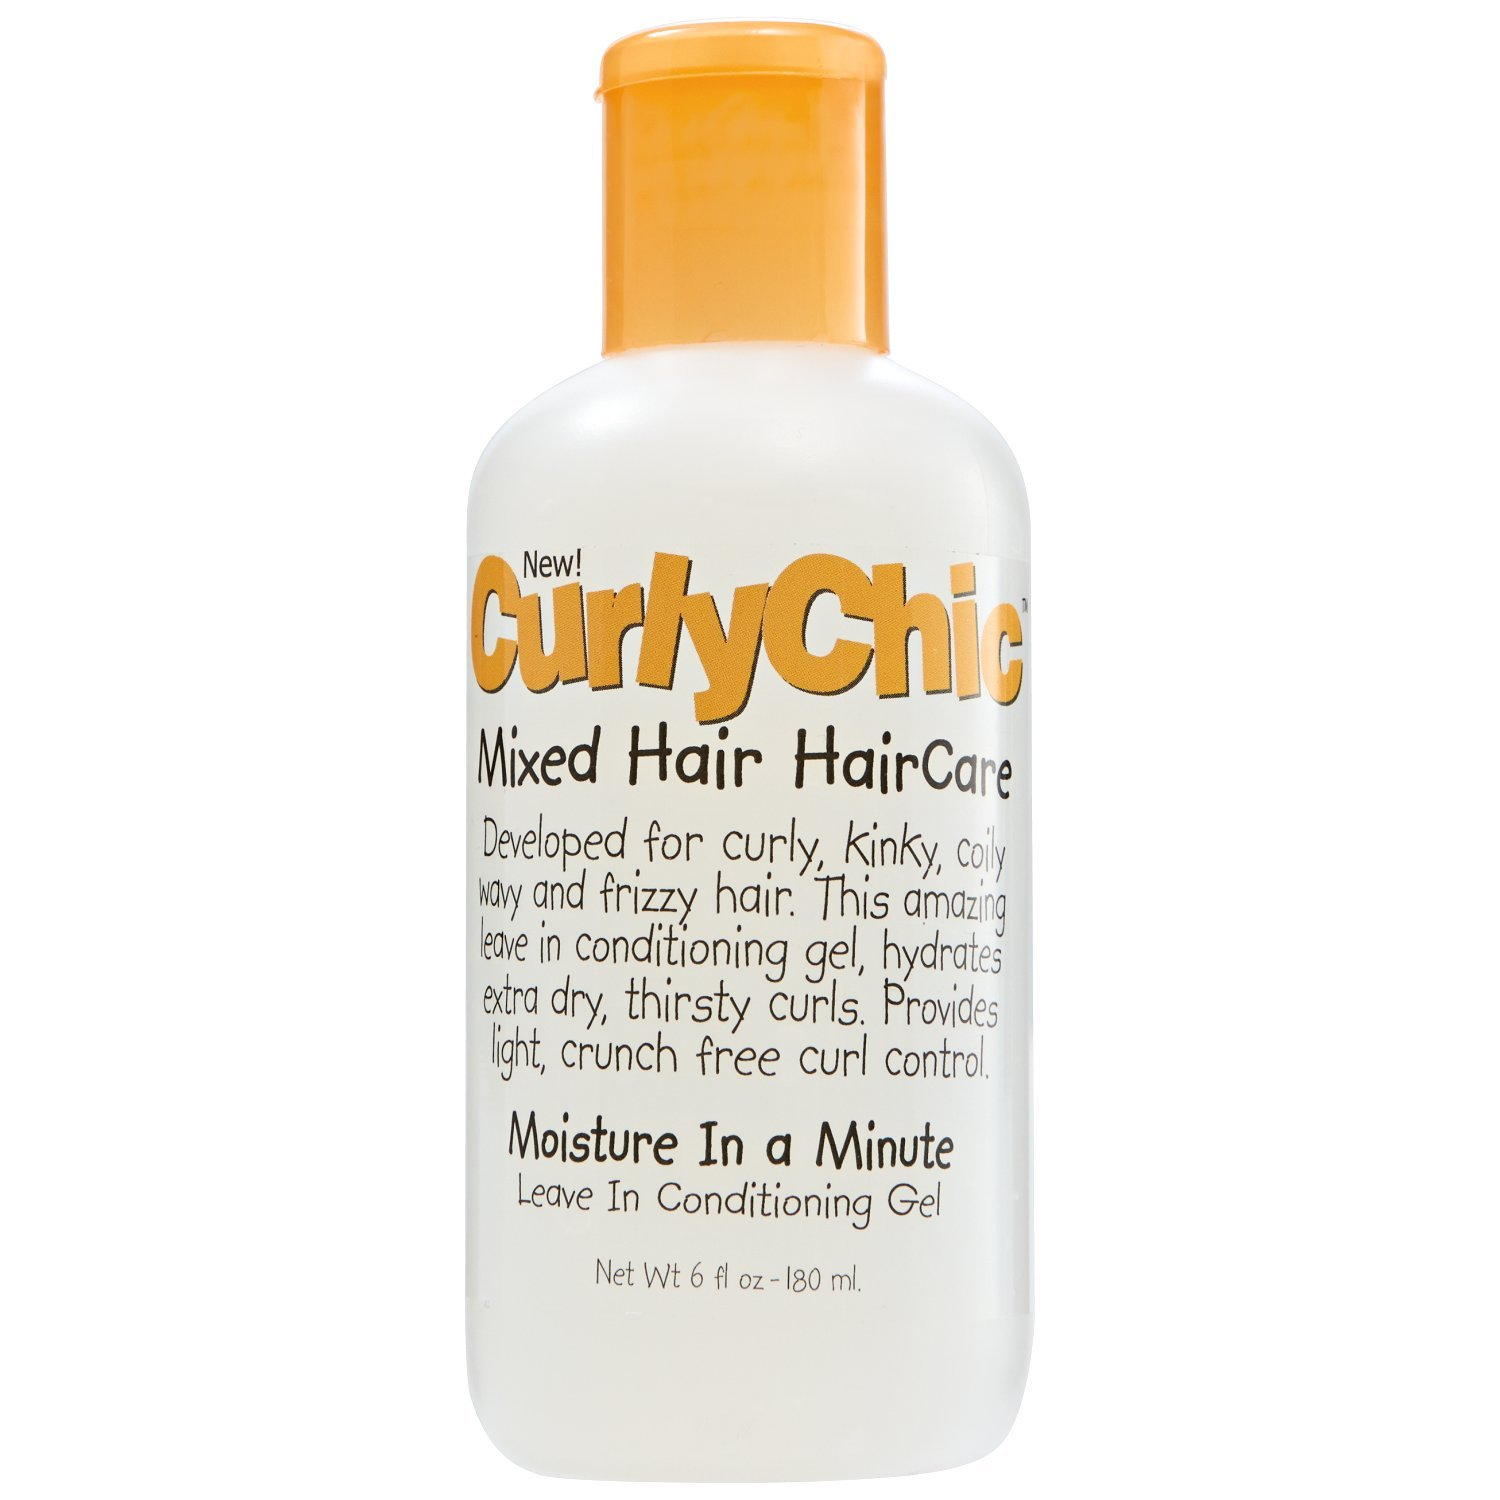 Top Curly Chic Moisture In A Minute for cheap